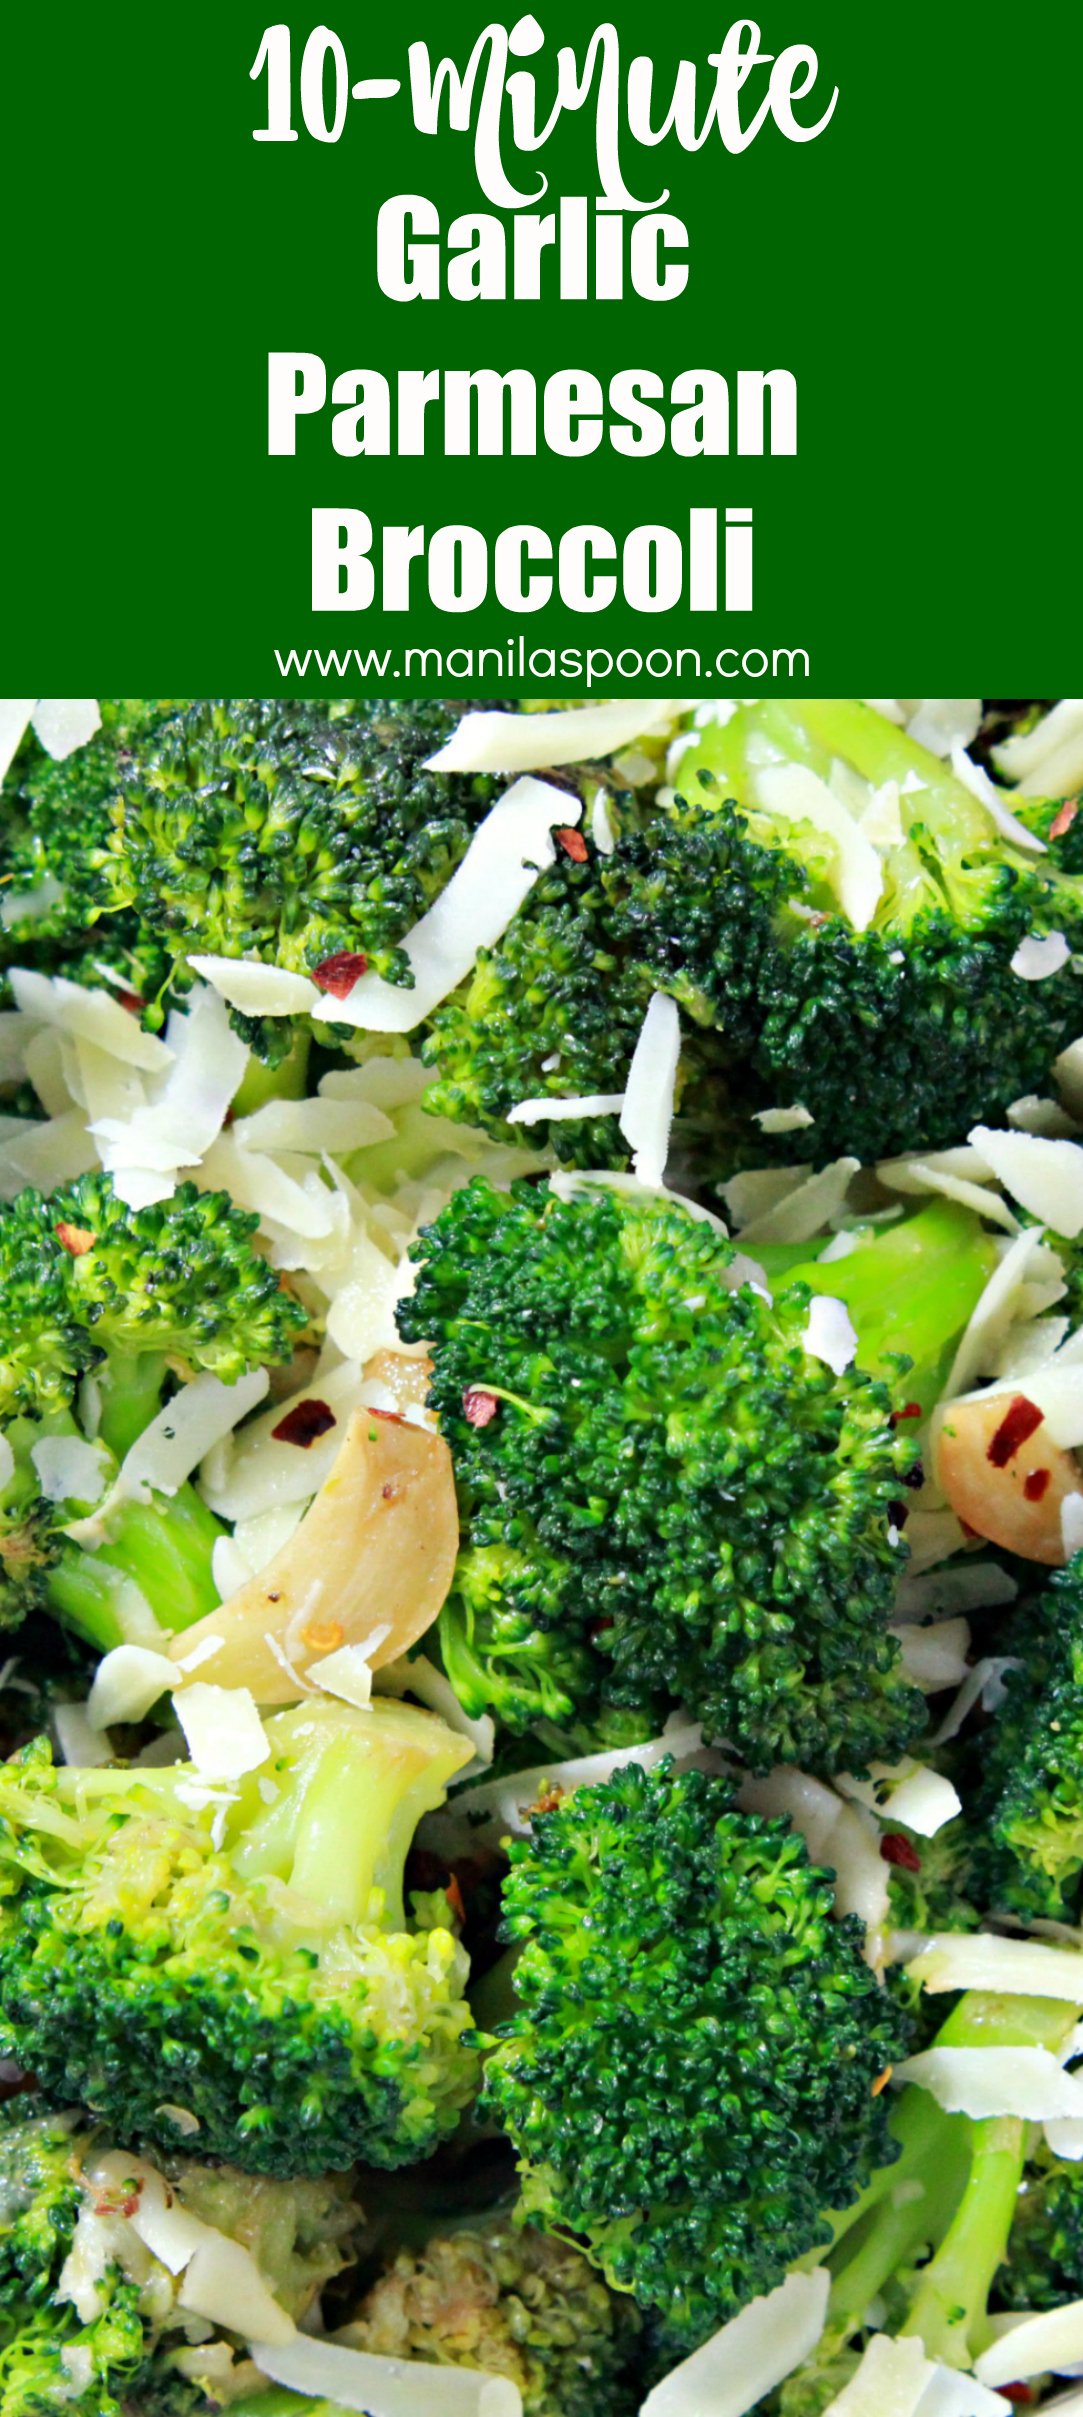 Just 10 minutes to make this super-easy and truly tasty side dish - Garlic Parmesan Broccoli! It's so addictively yummy you'll be making this over and over again!